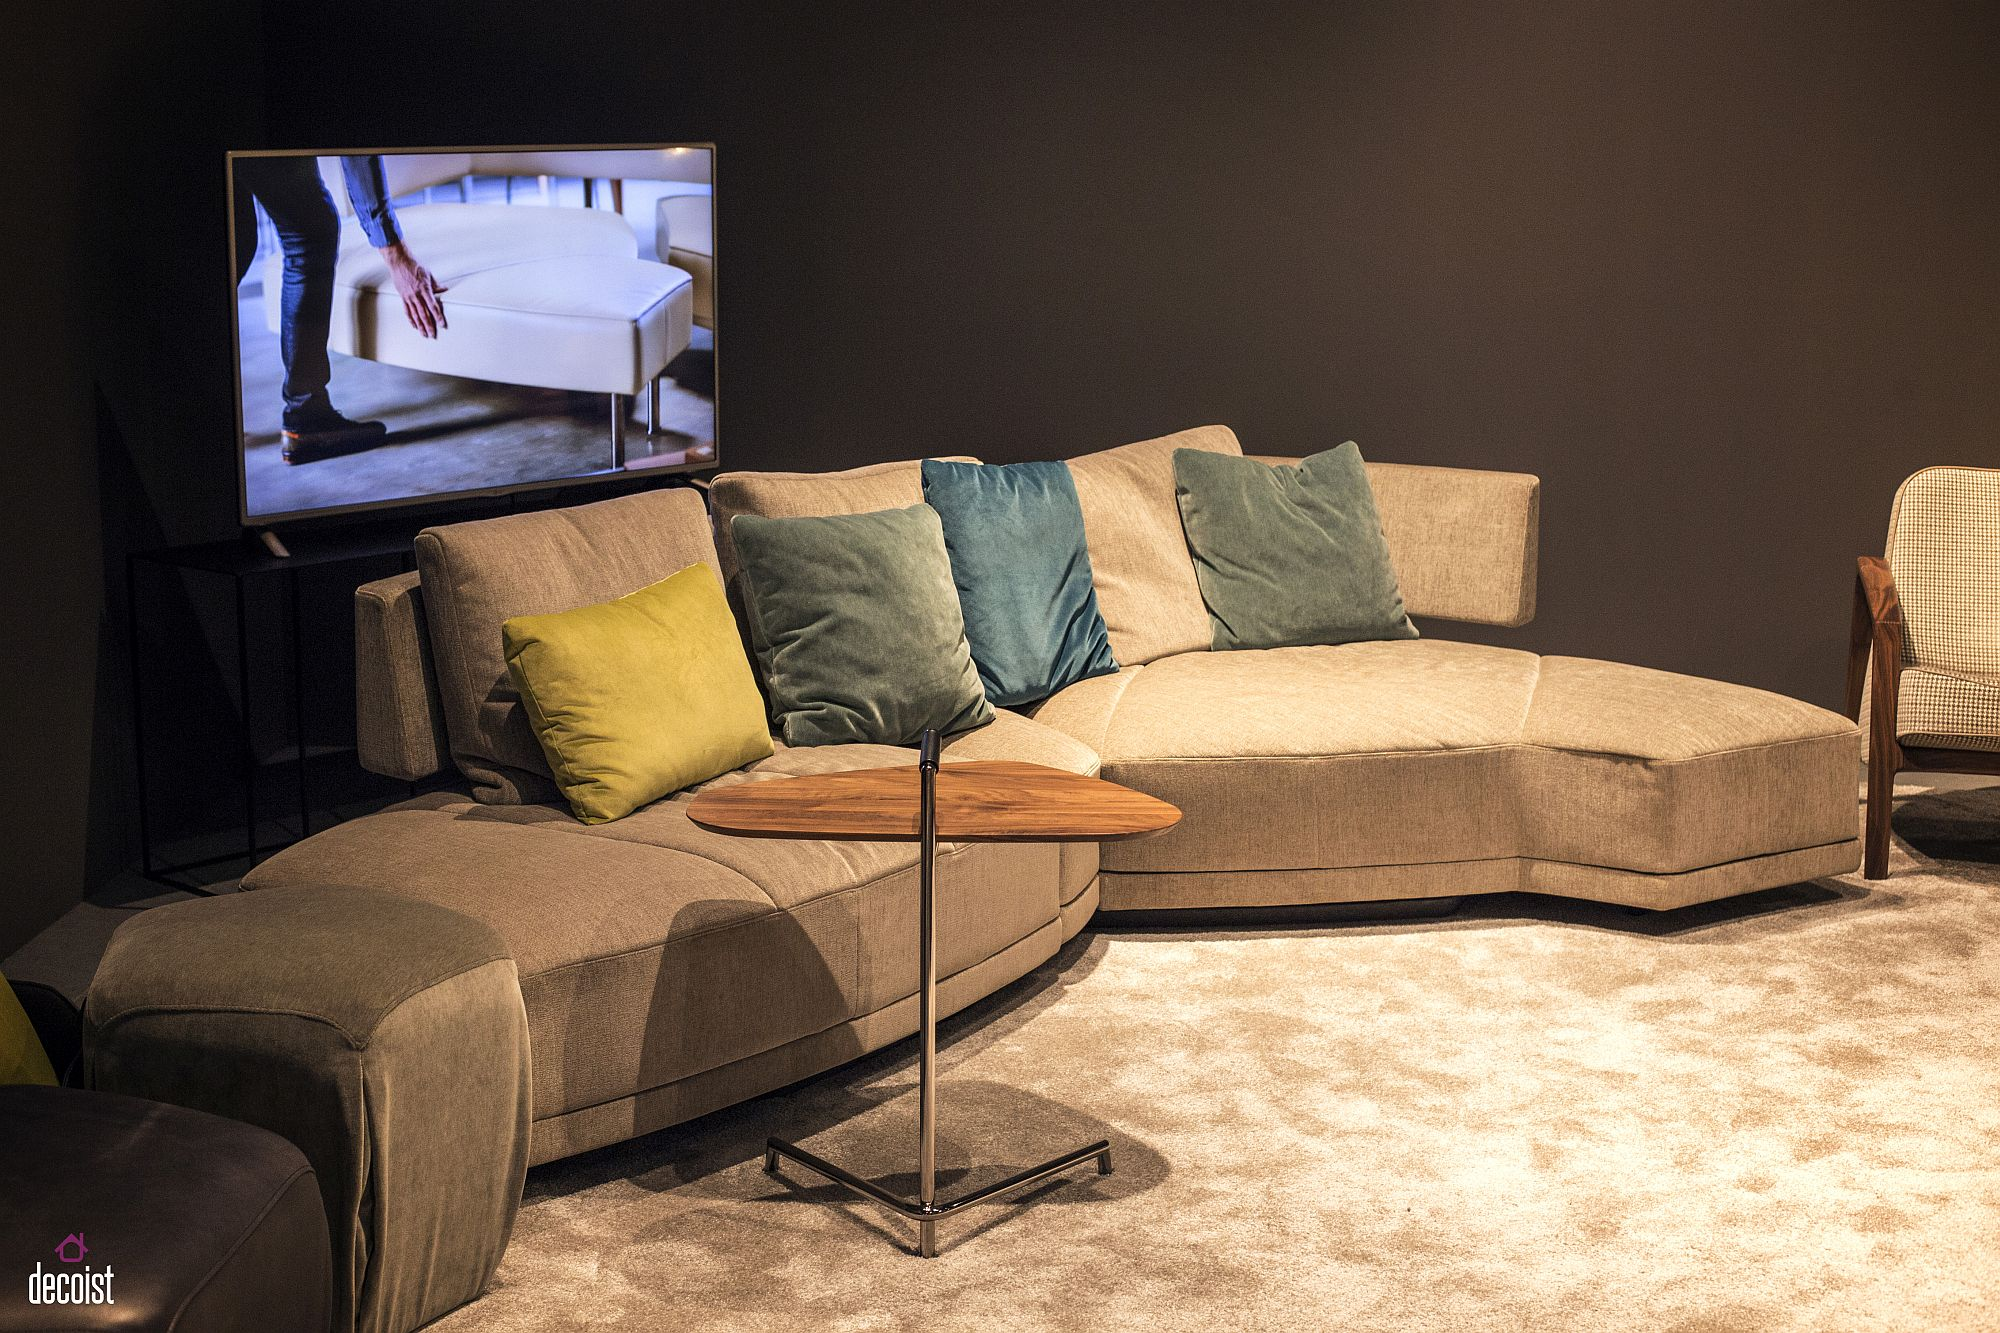 Modular sofa and slim side table from Jori